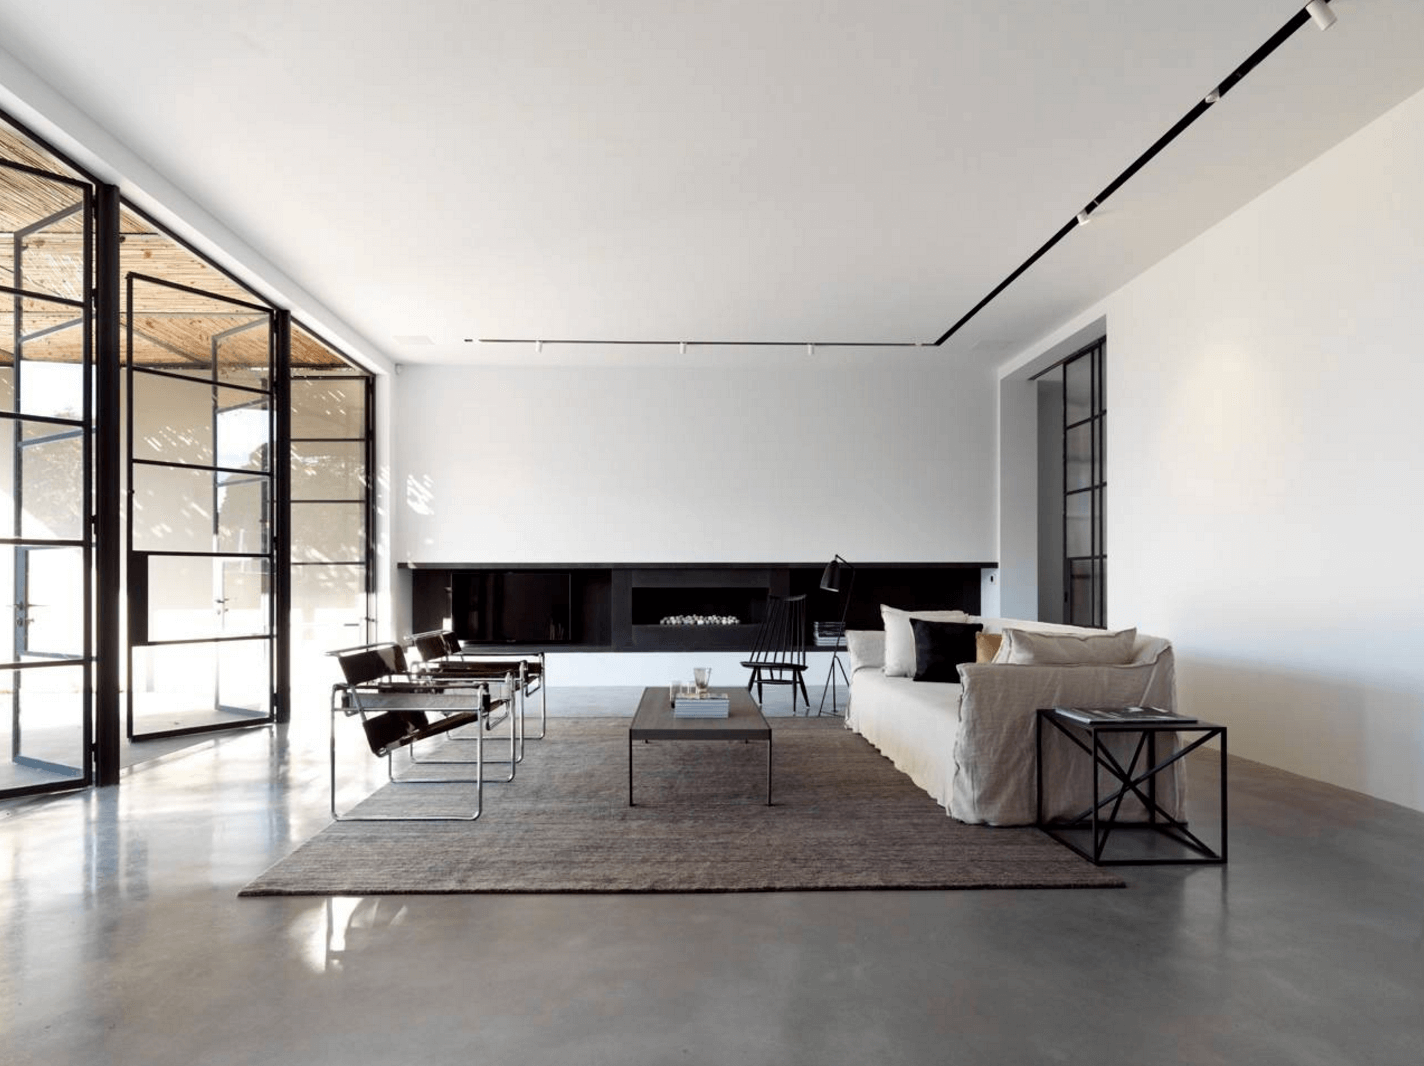 Minimalism in Interior Design: 25 Examples Proving Less Really Is More